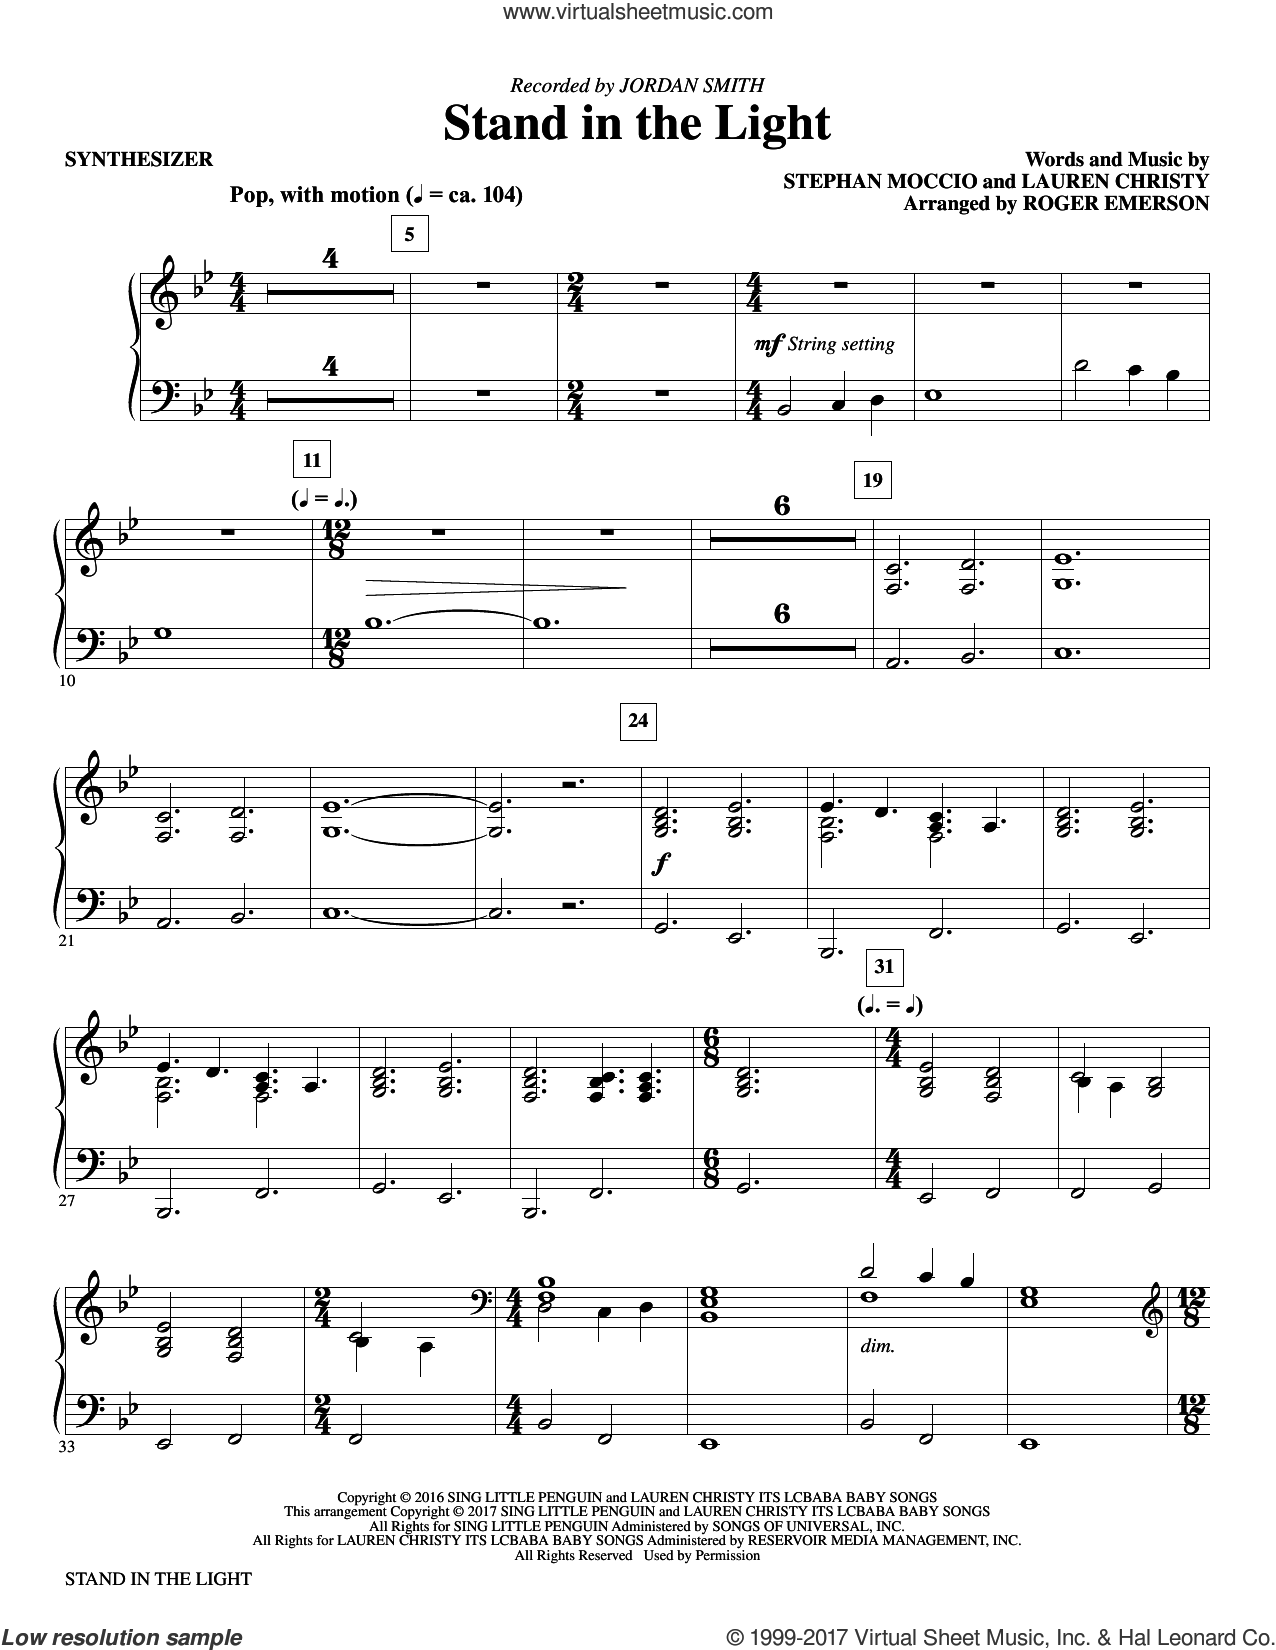 Stand In The Light (complete set of parts) sheet music for orchestra/band by Roger Emerson, Lauren Christy and Stephan Moccio, intermediate skill level